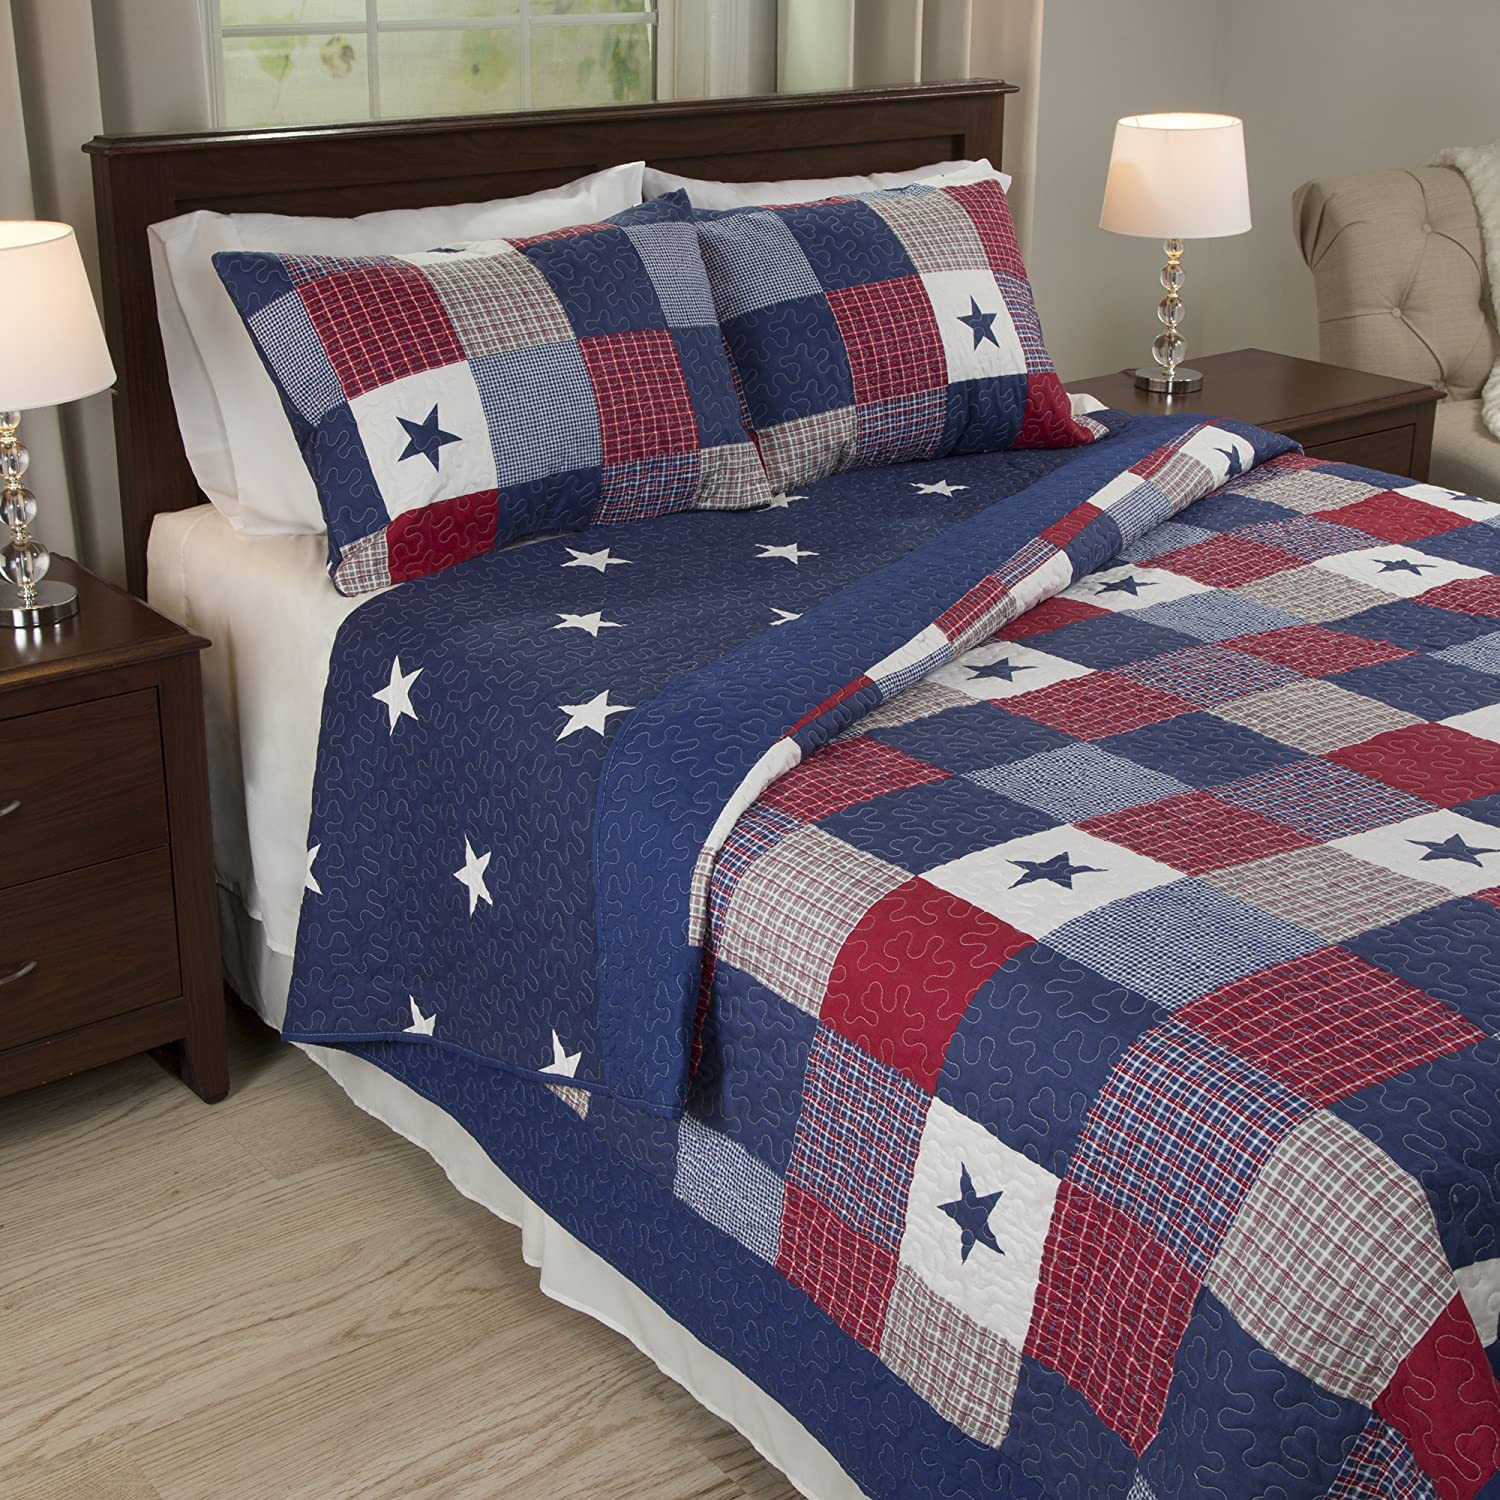 Lavish Home Caroline 3 Piece Quilt Set - King